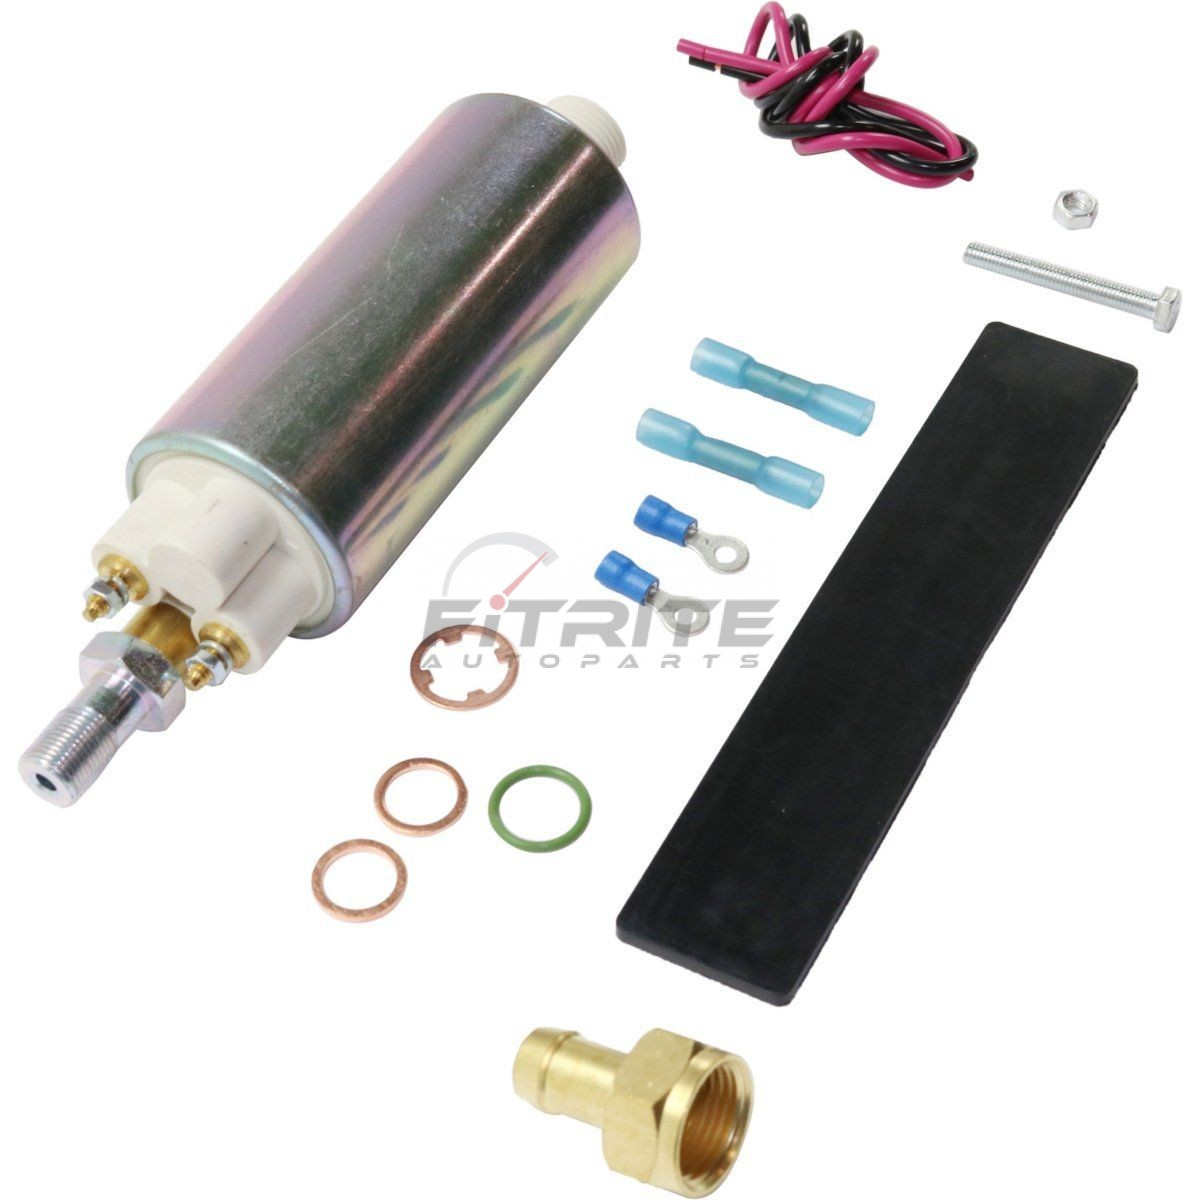 NEW ELECTRIC FUEL PUMP FOR 1983-89 MITSUBISHI STARION 06167PE7751 2321087601000